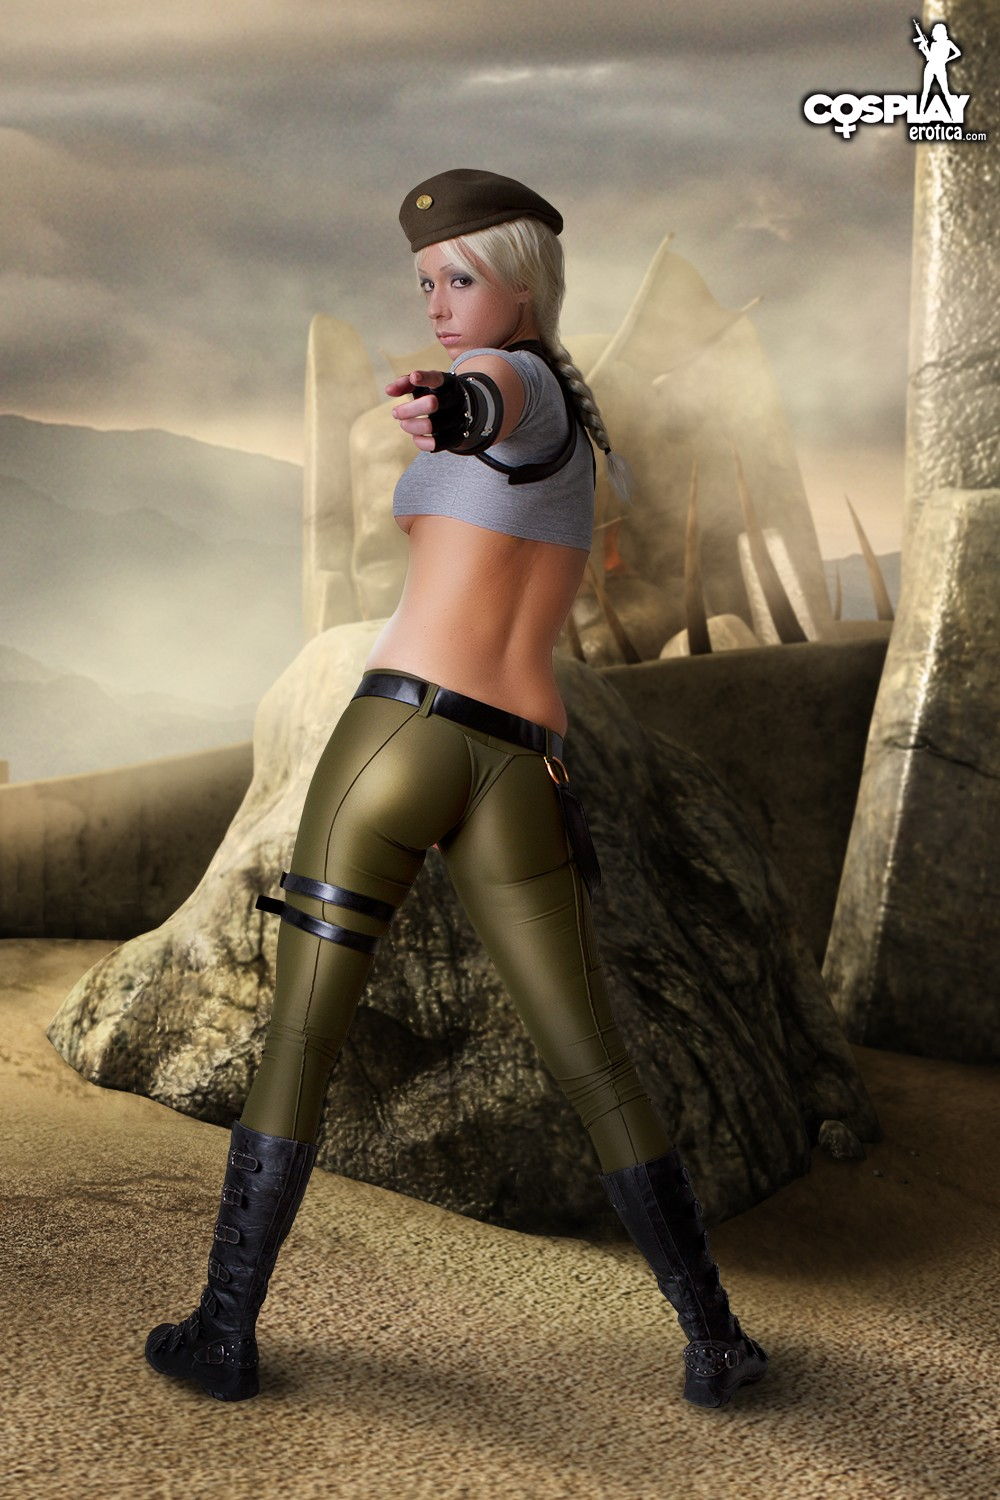 Mortal kombat 9 sonya blade nude costume nackt photo